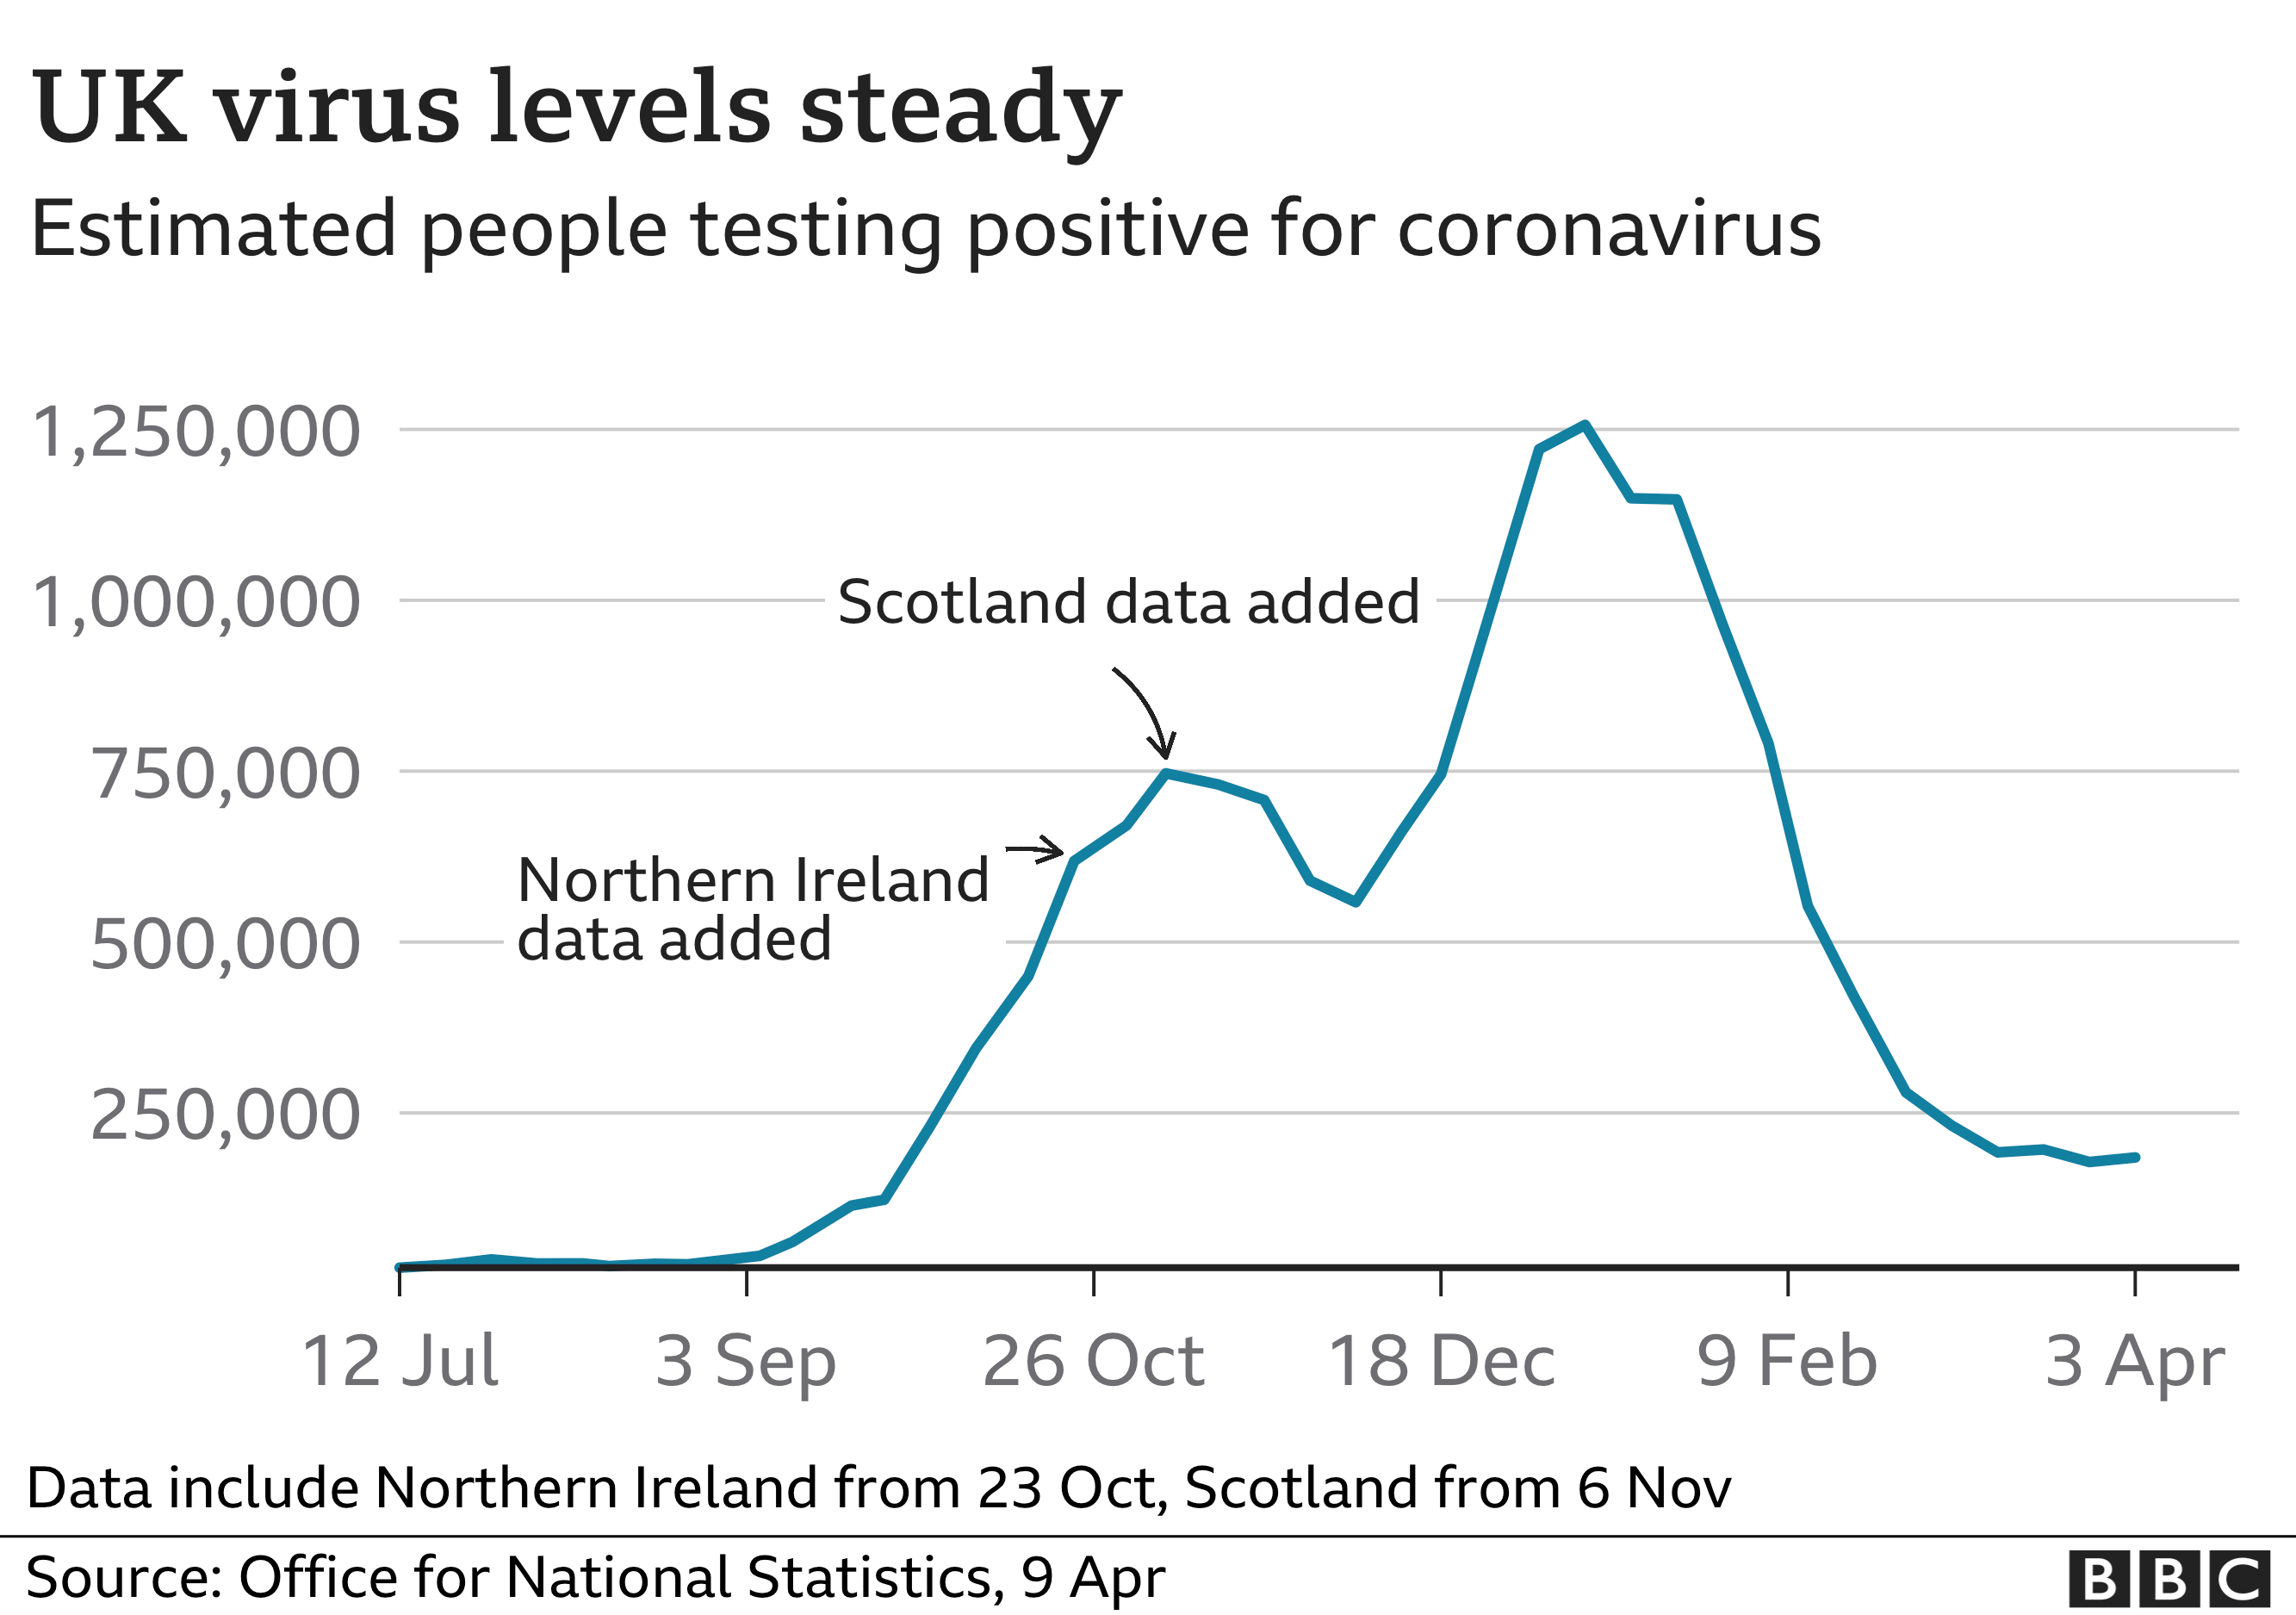 UK virus levels stable in recent weeks